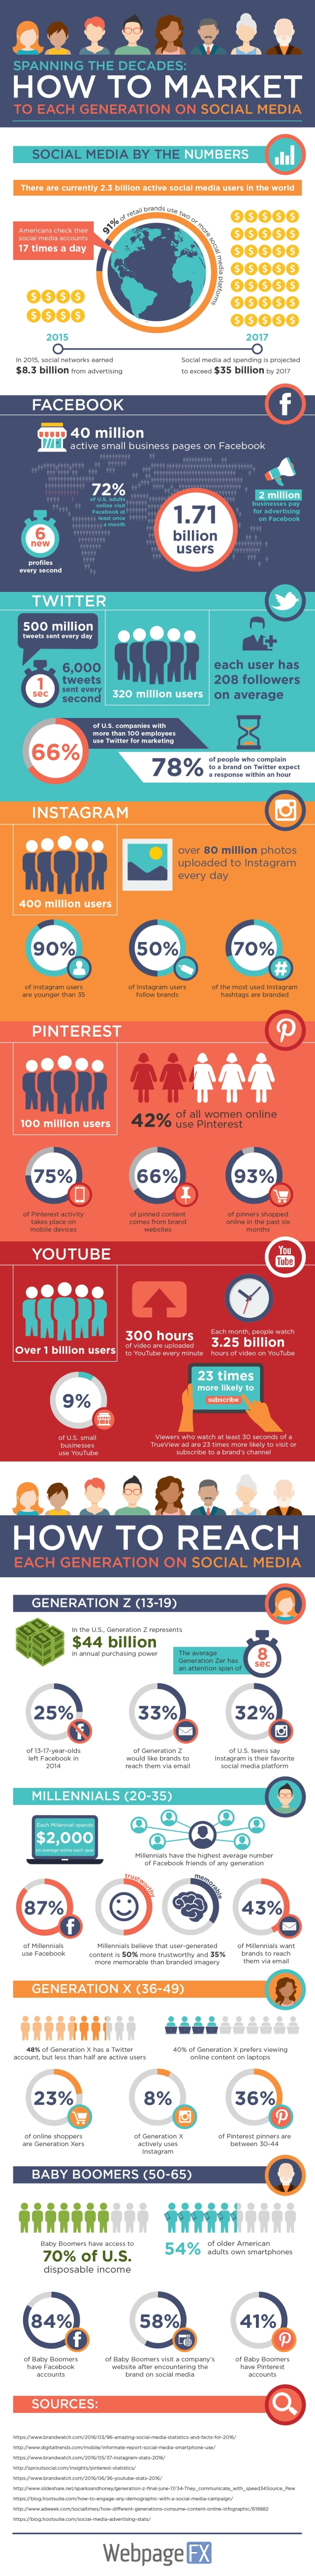 how-to-market-your-business-to-each-age-group-on-social-media